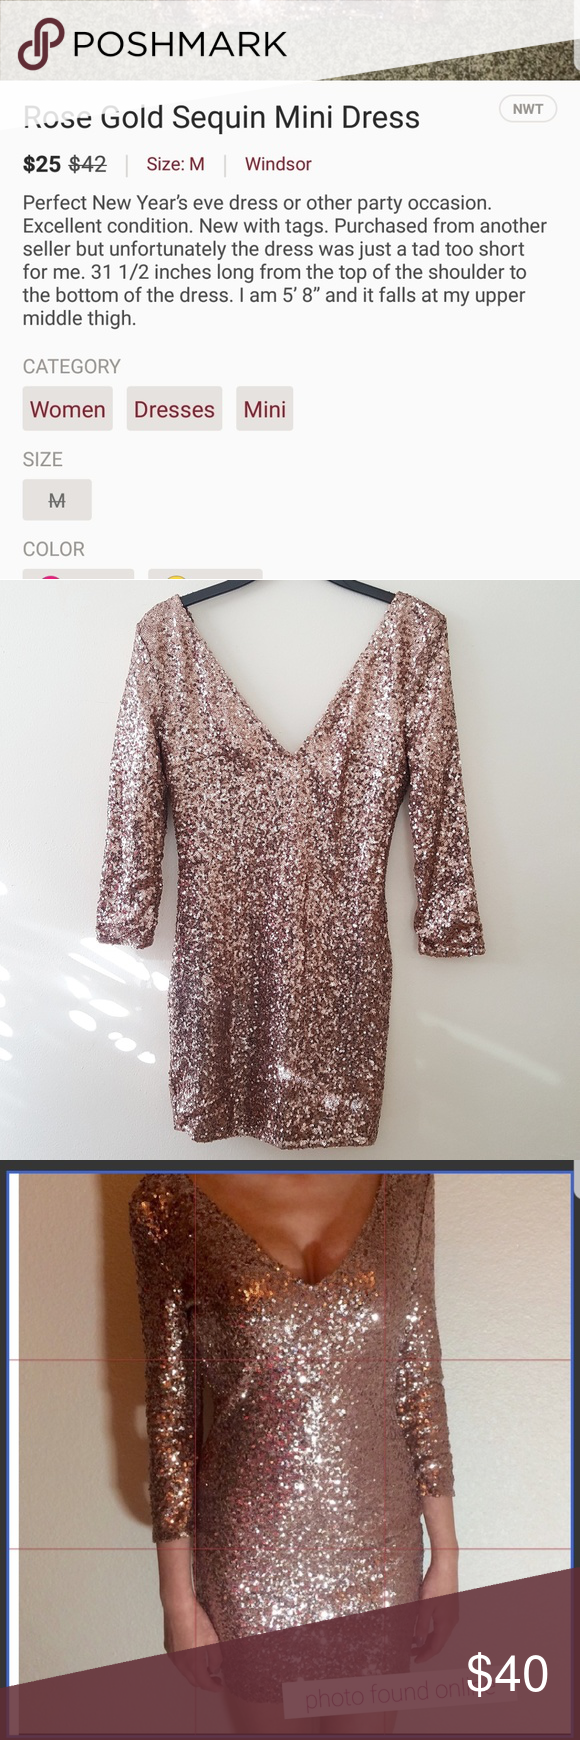 Nwt windsor rose gold sequins dress